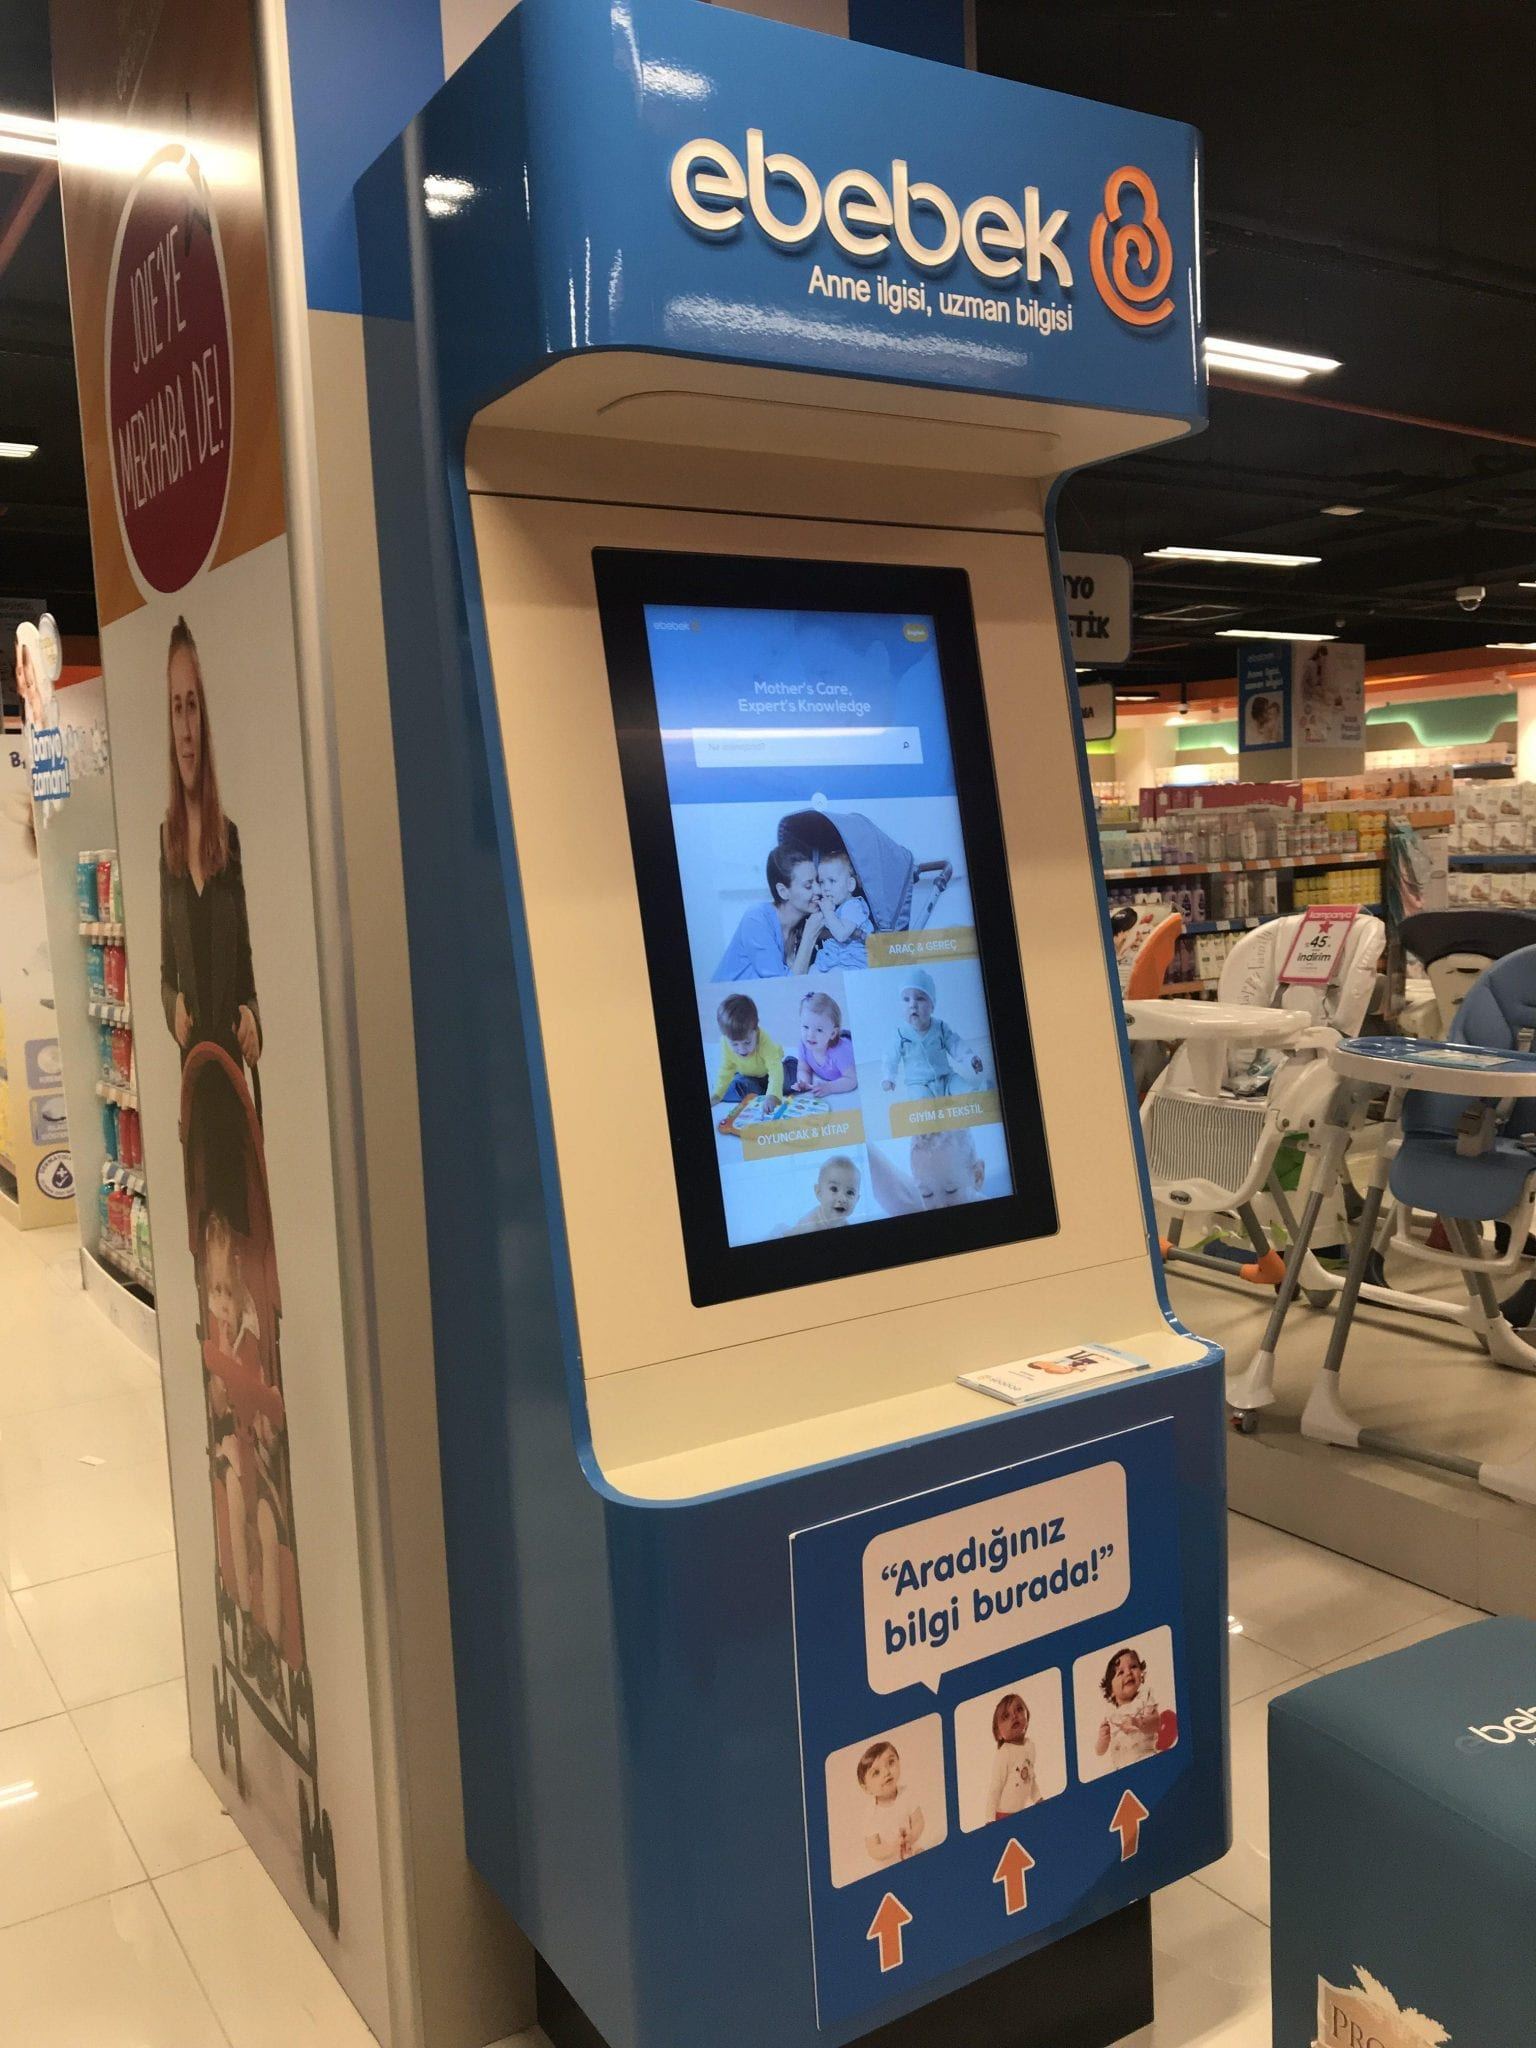 ebebek touchscreen